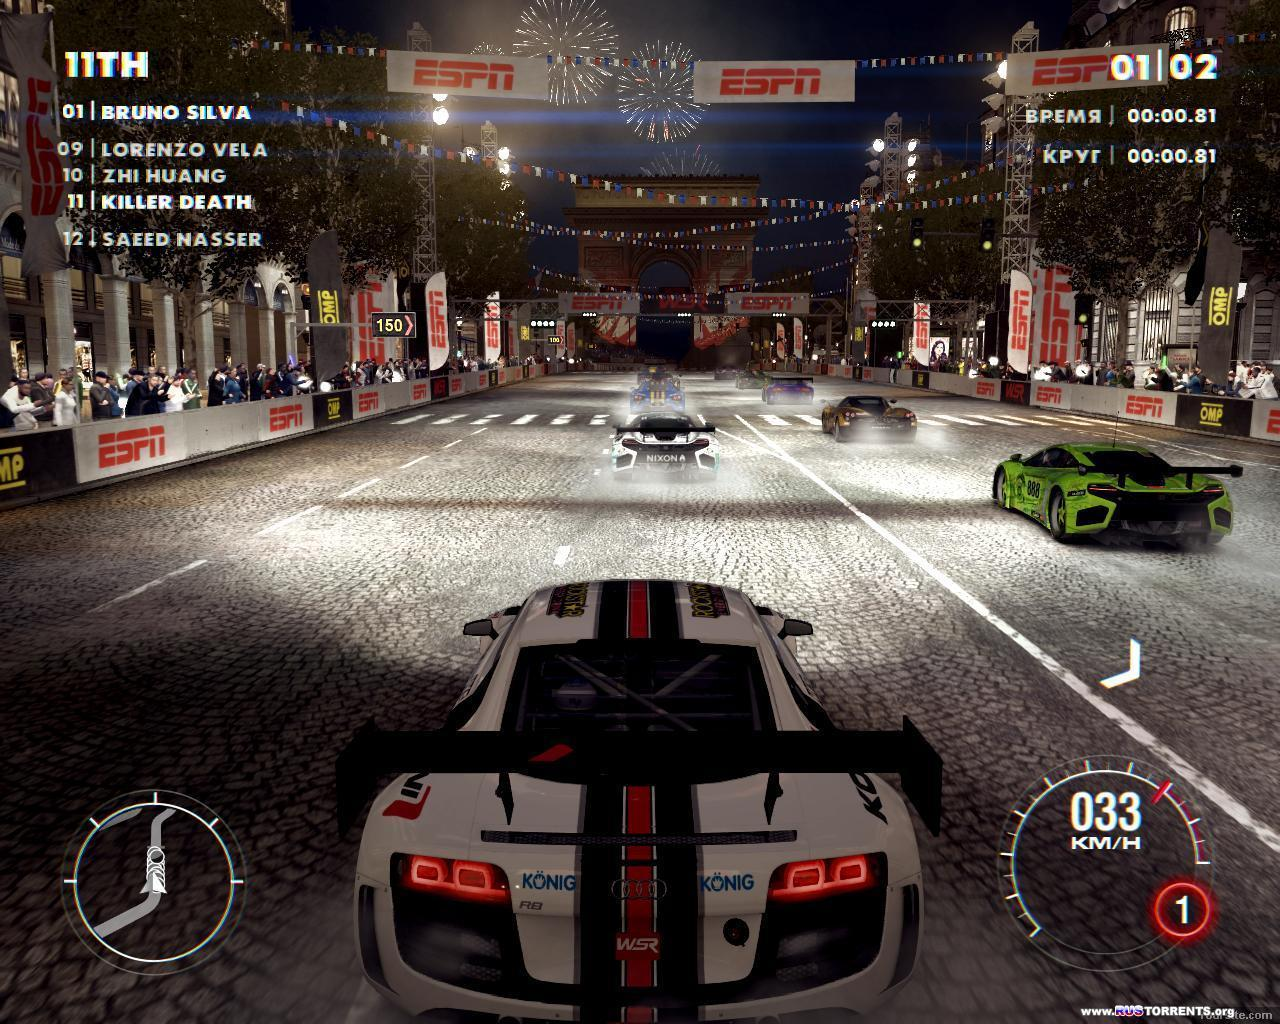 GRID 2 [v1.0.85.8679 + All In DLC Pack] | PC